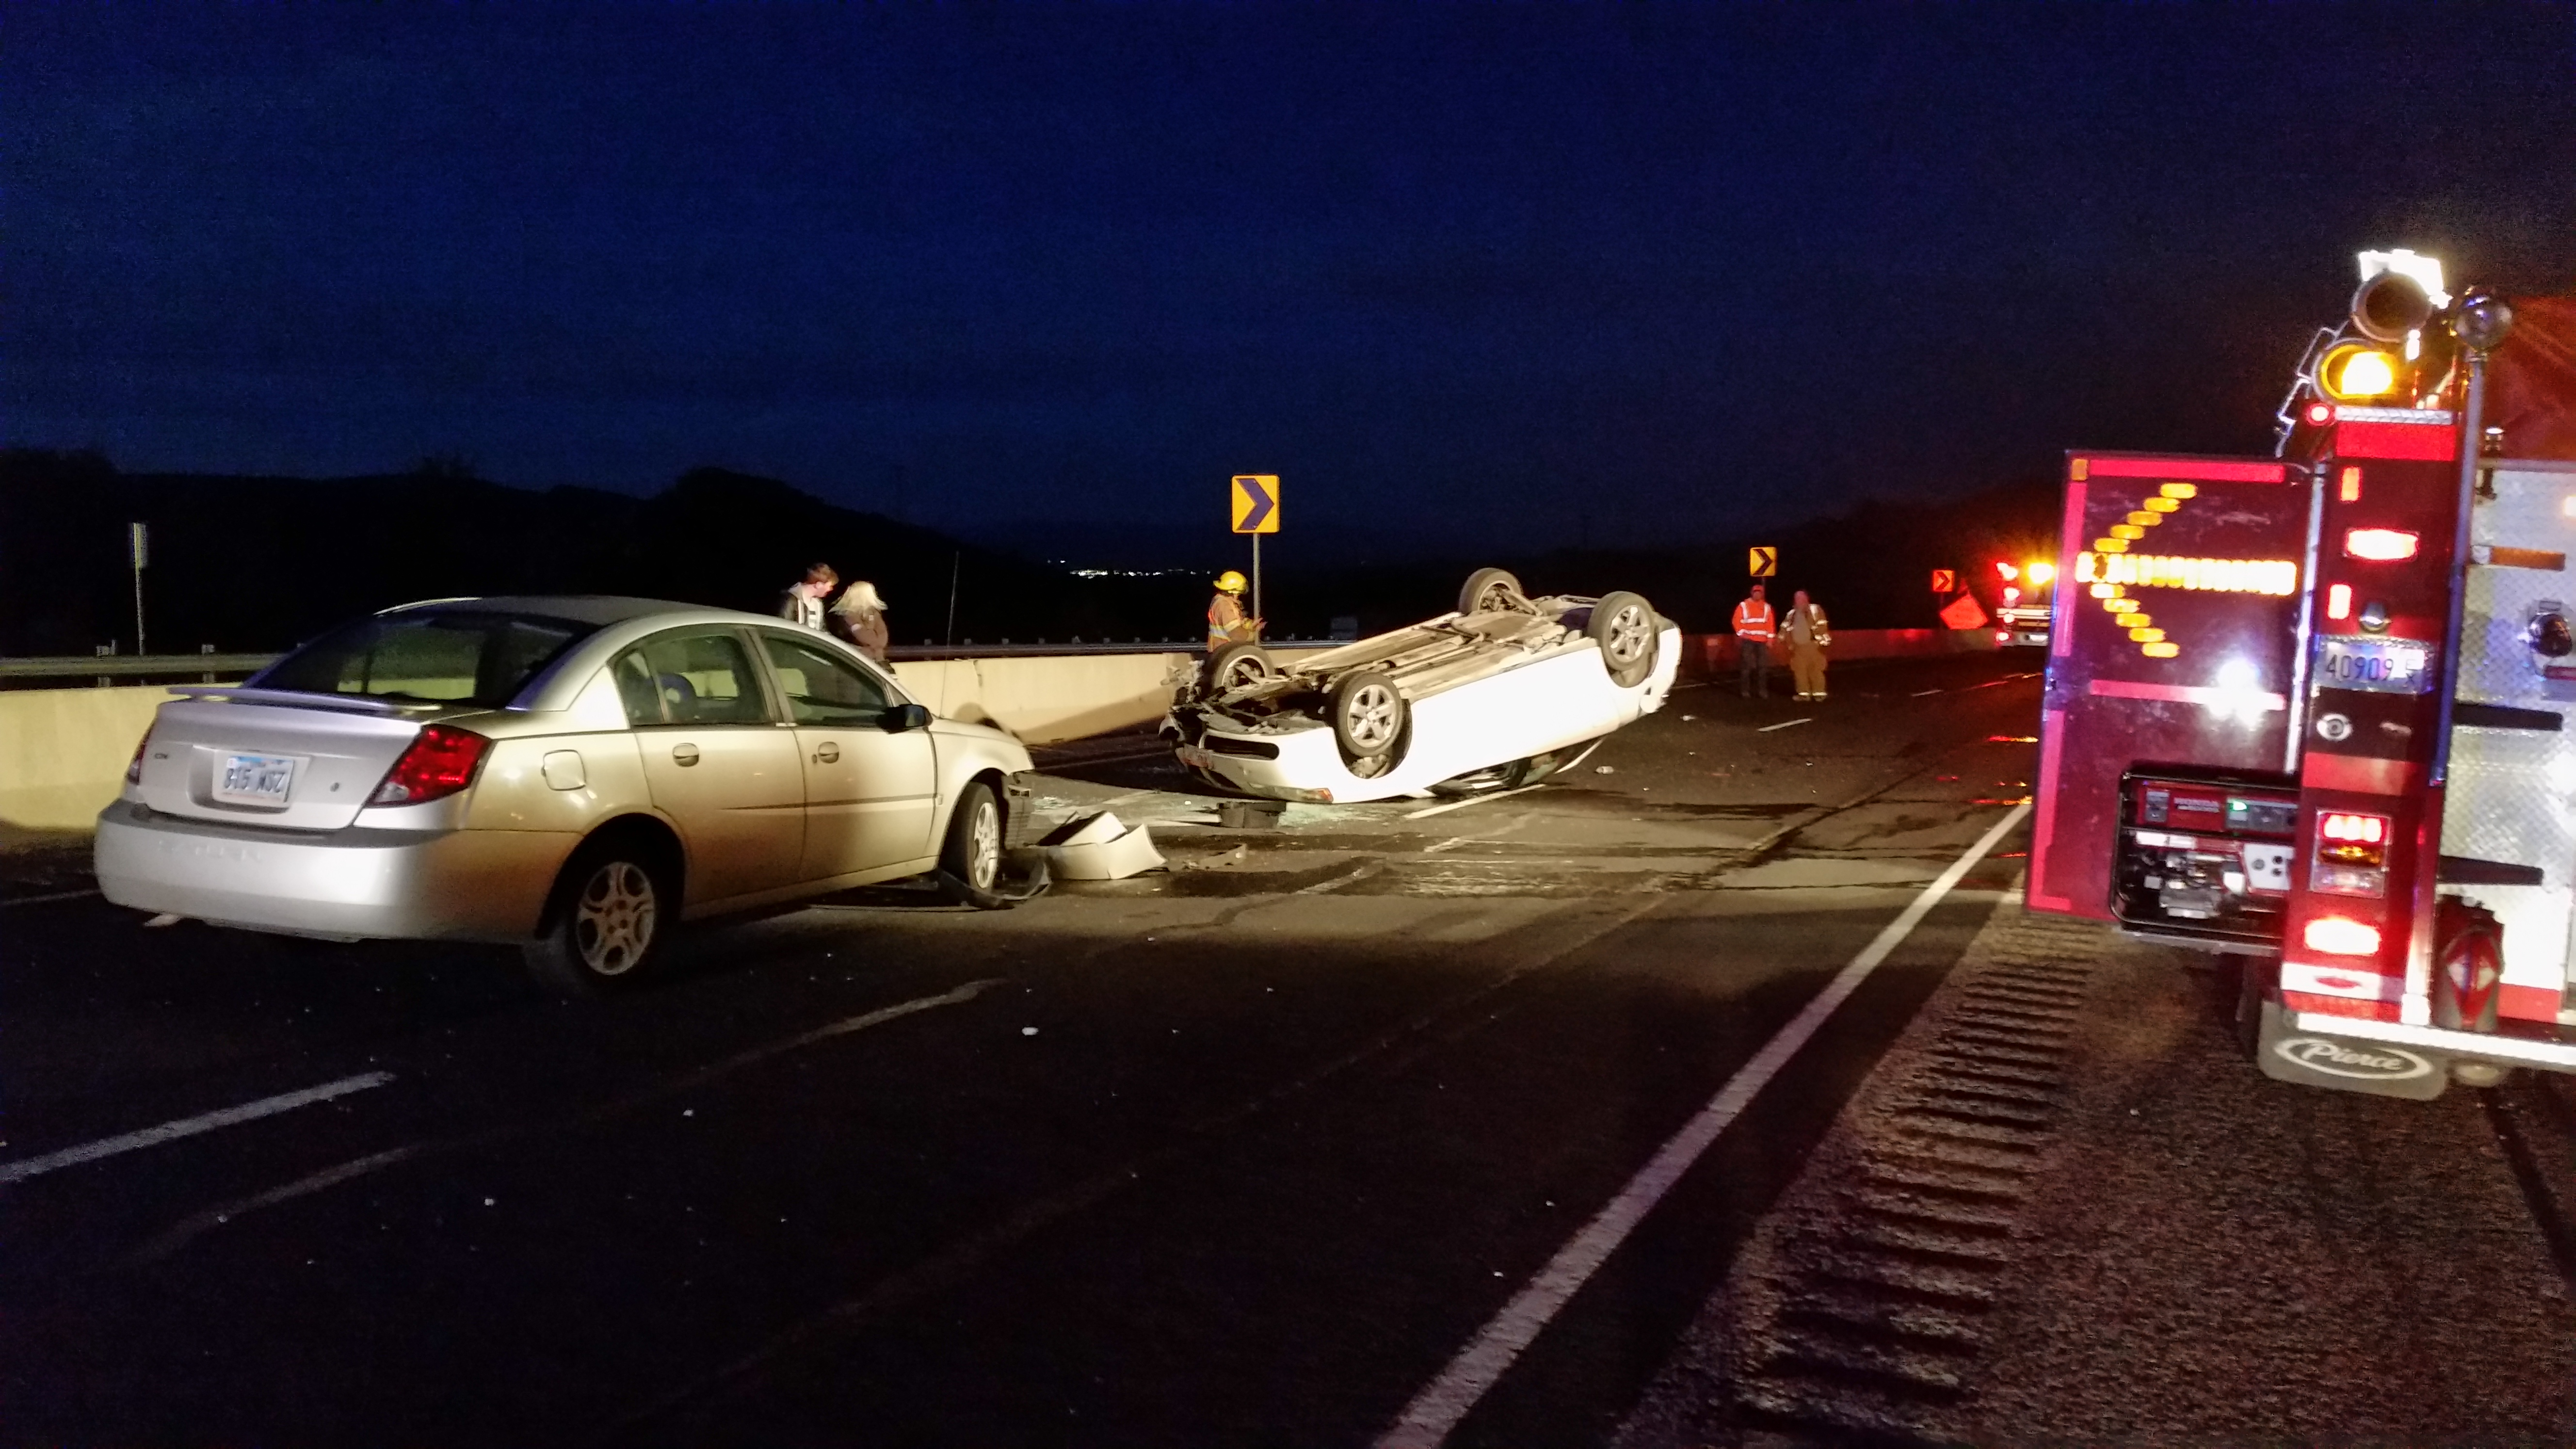 After colliding with a rolled car that had come to rest in the middle of Interstate 15 near milepost 23, a 54-year-old man excited his vehicle and was struck by an oncoming car. The man was transported to the hospital in critical condition, Washington County, Utah, Nov. 1, 2016   Photo courtesy of the Utah Highway Patrol, St. George News